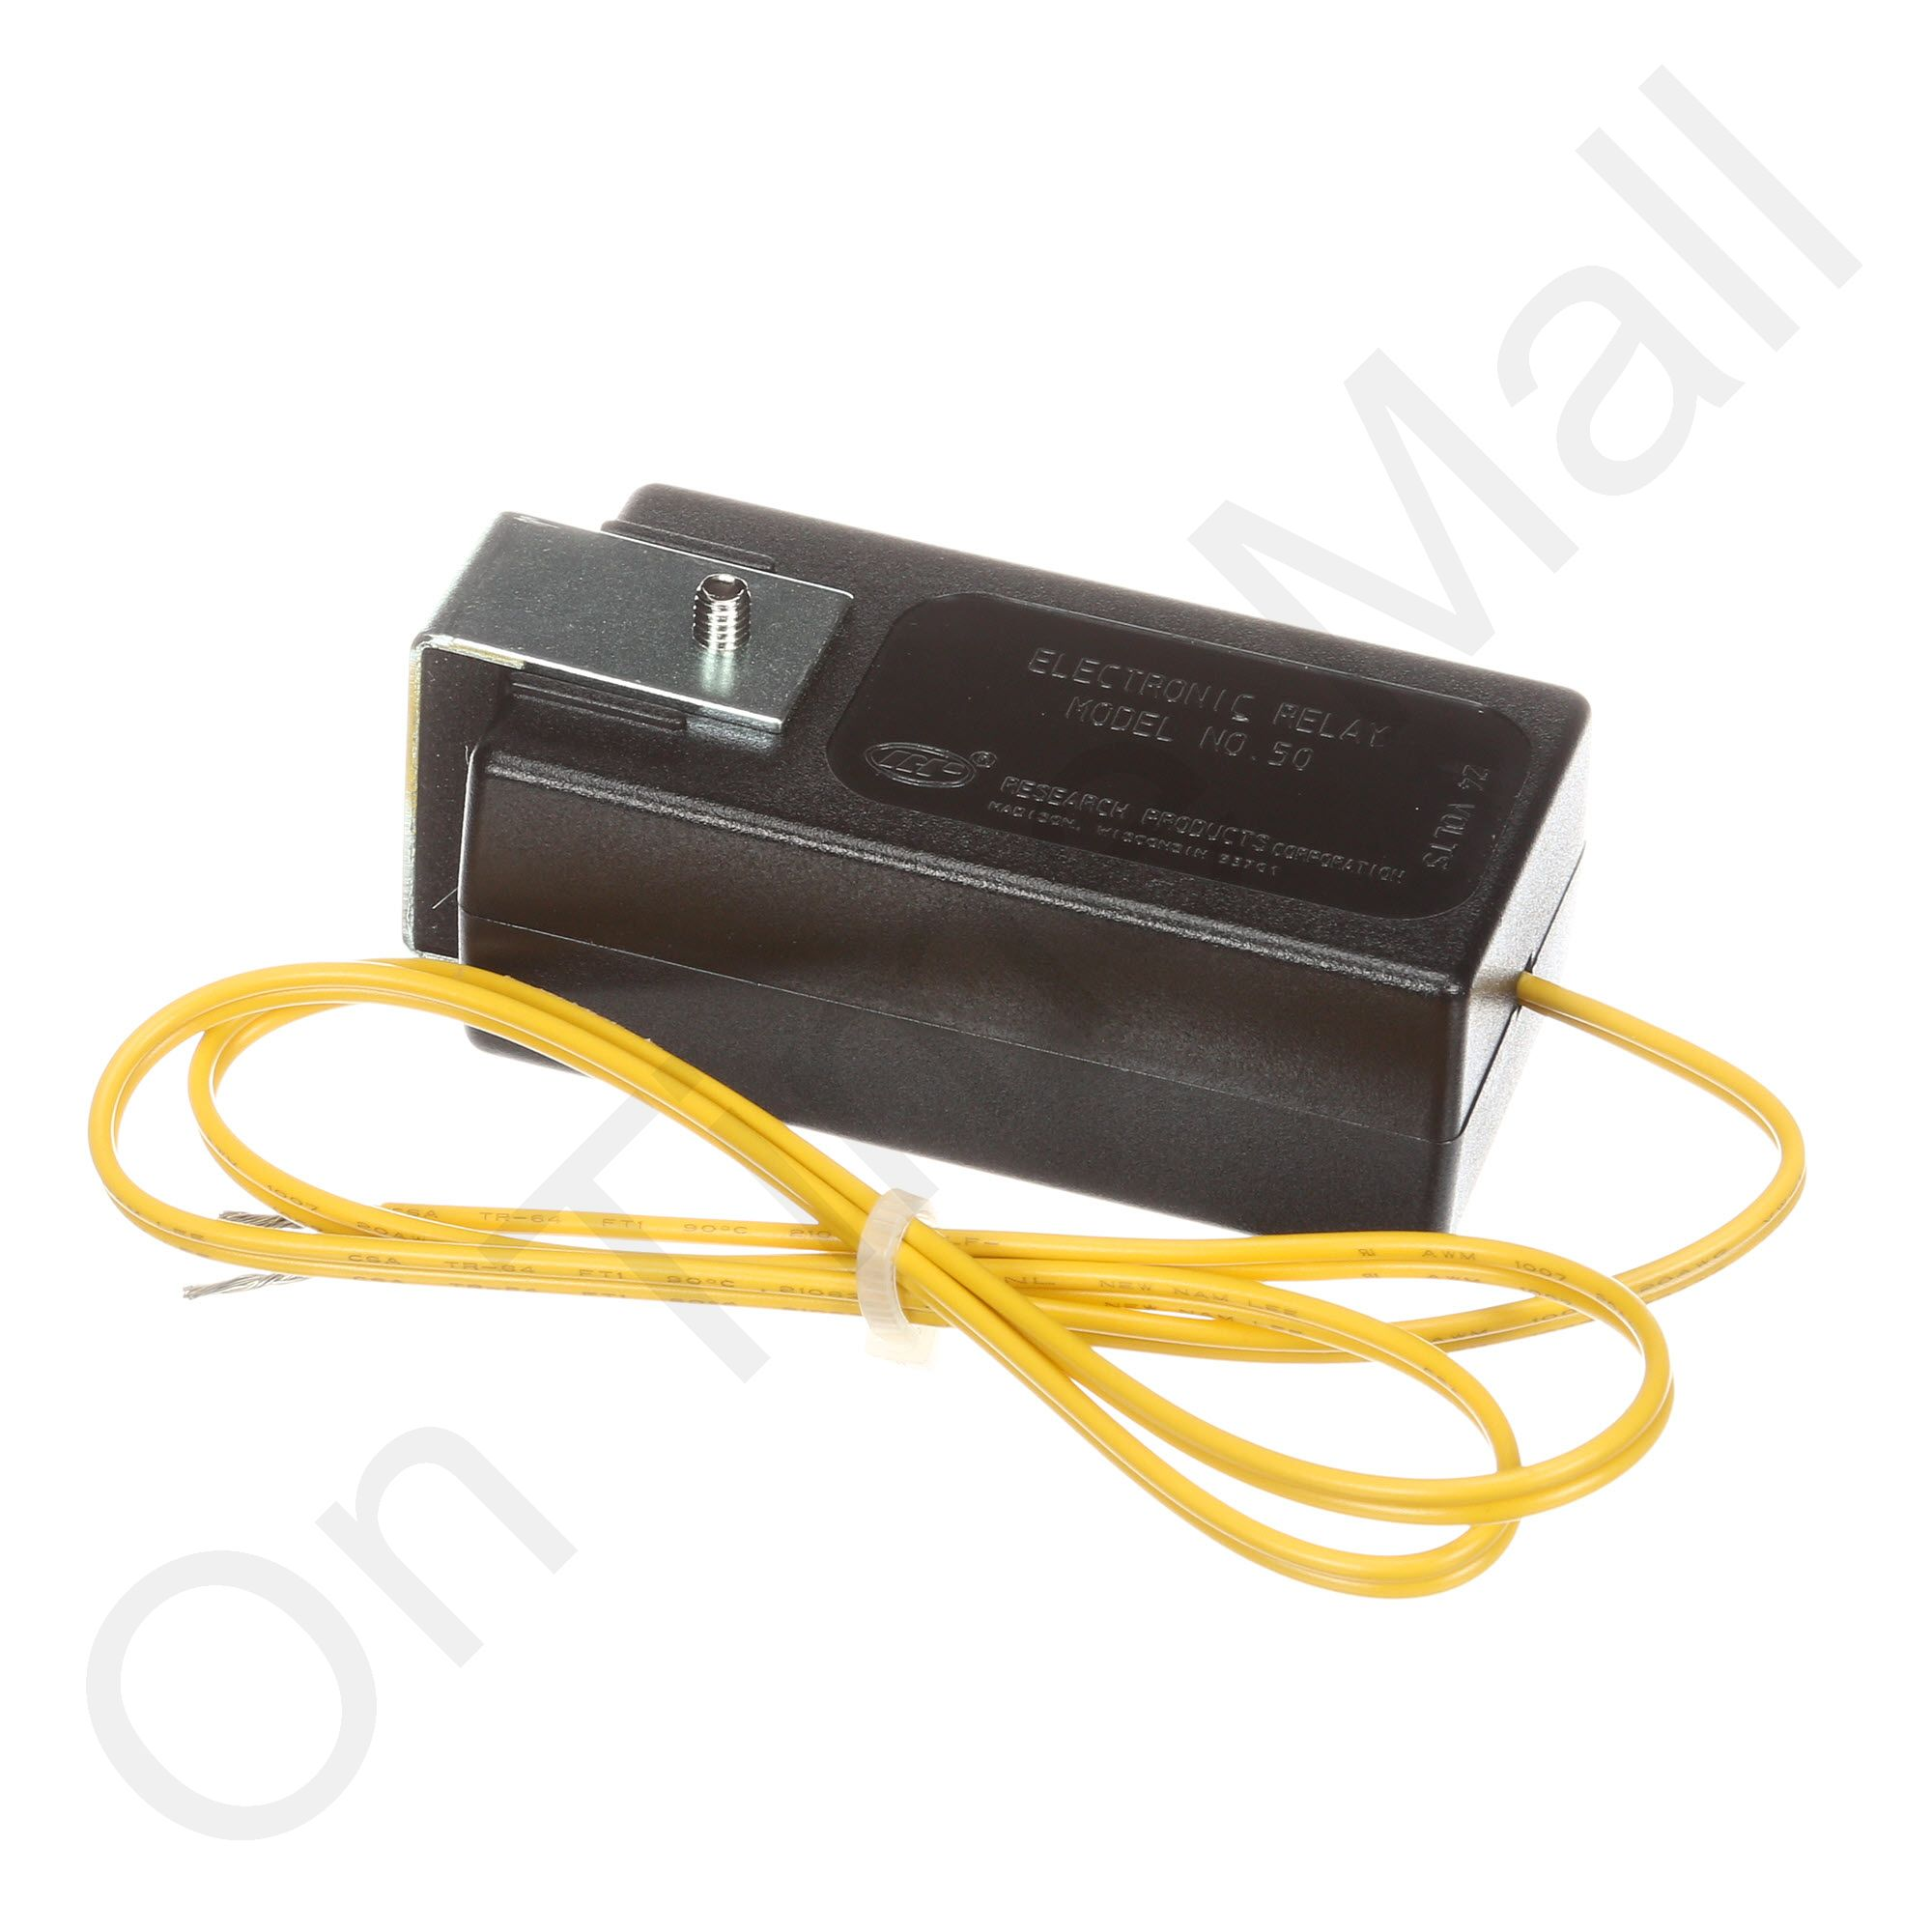 [EQHS_1162]  Aprilaire 50 Current Sensing Relay 24V | Aprilaire Current Sensing Relay Wiring Diagram |  | Aprilaire Humidifier & Air Cleaner Parts